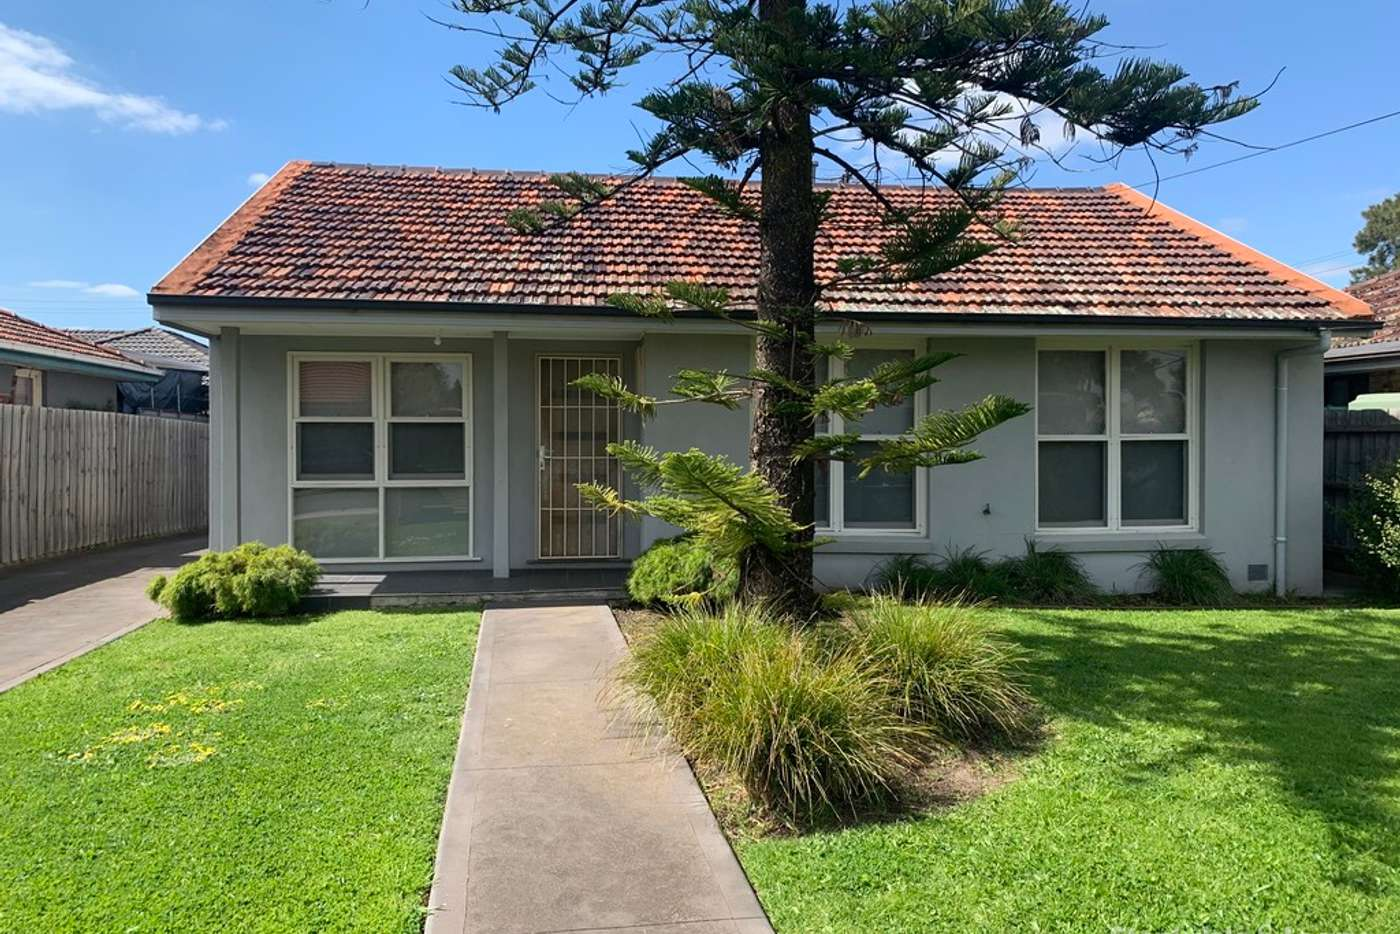 Main view of Homely unit listing, 1/4 Howard Court, Glenroy VIC 3046